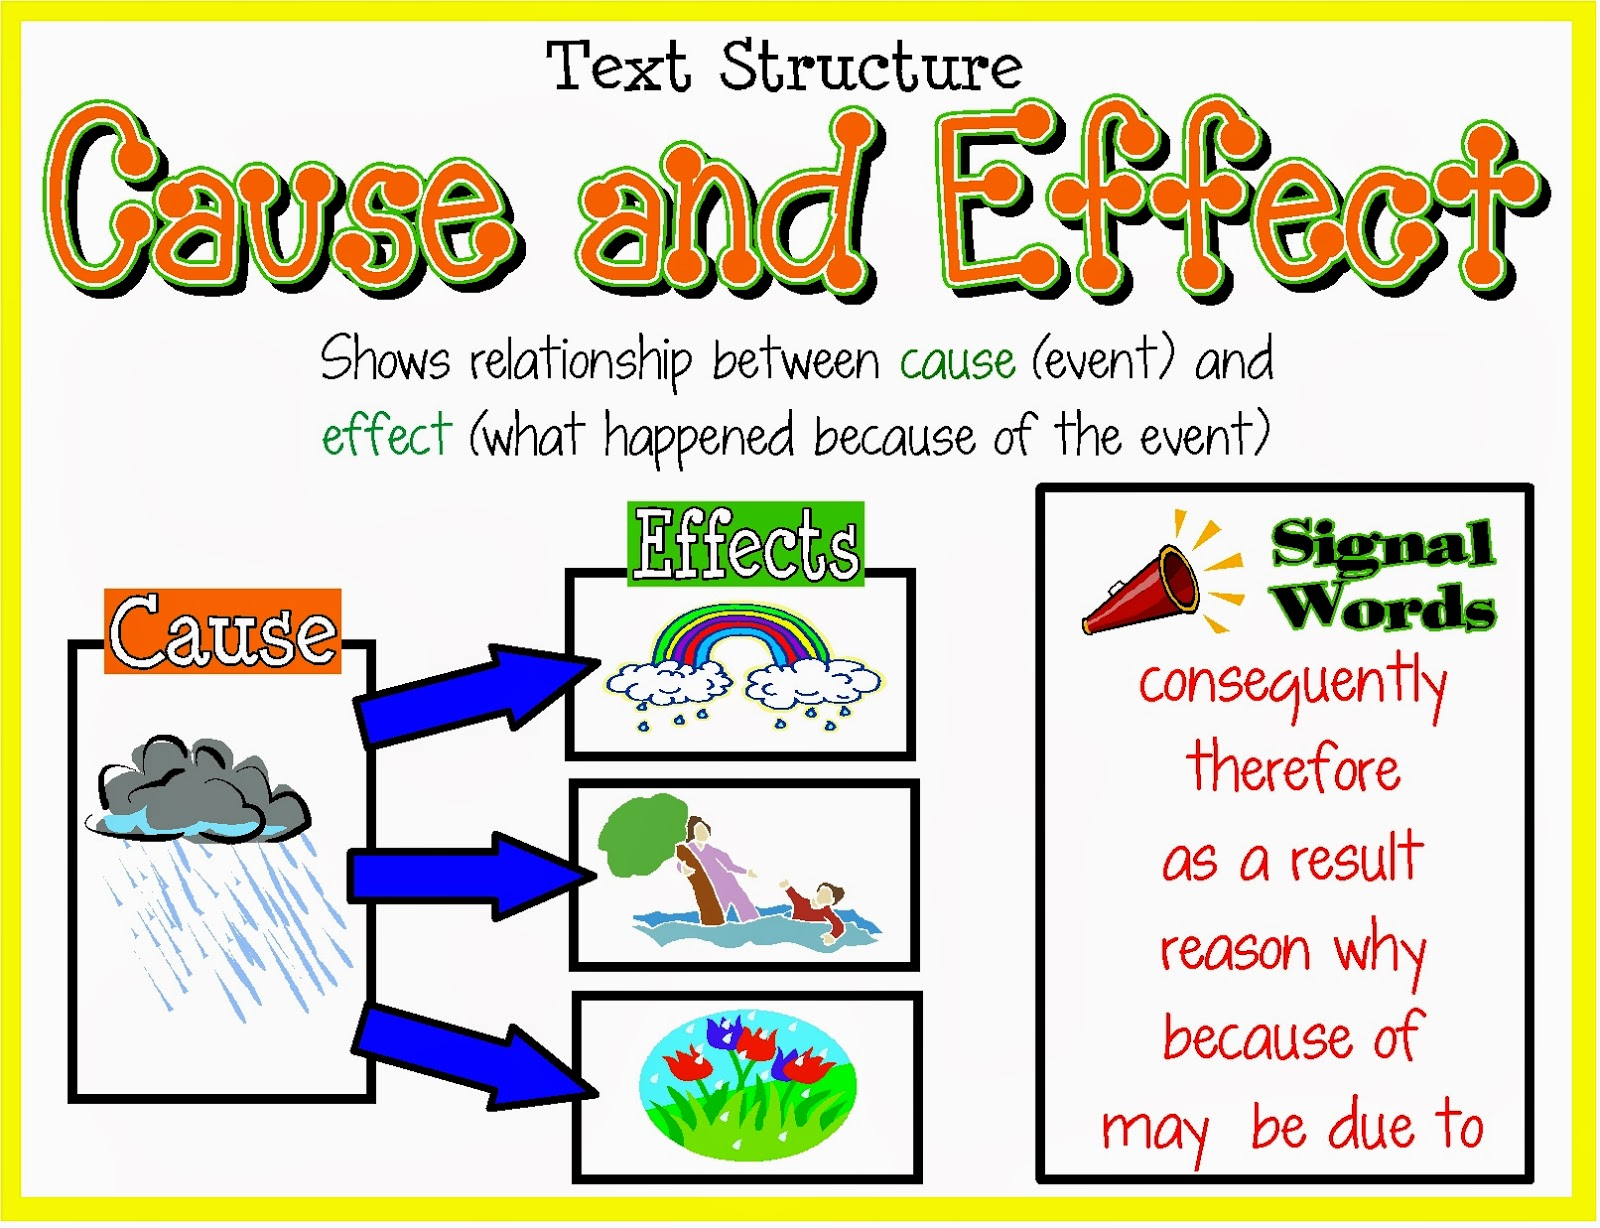 ruksuda  after learned cause and effect i understood that what is the cause or effect in the sentence